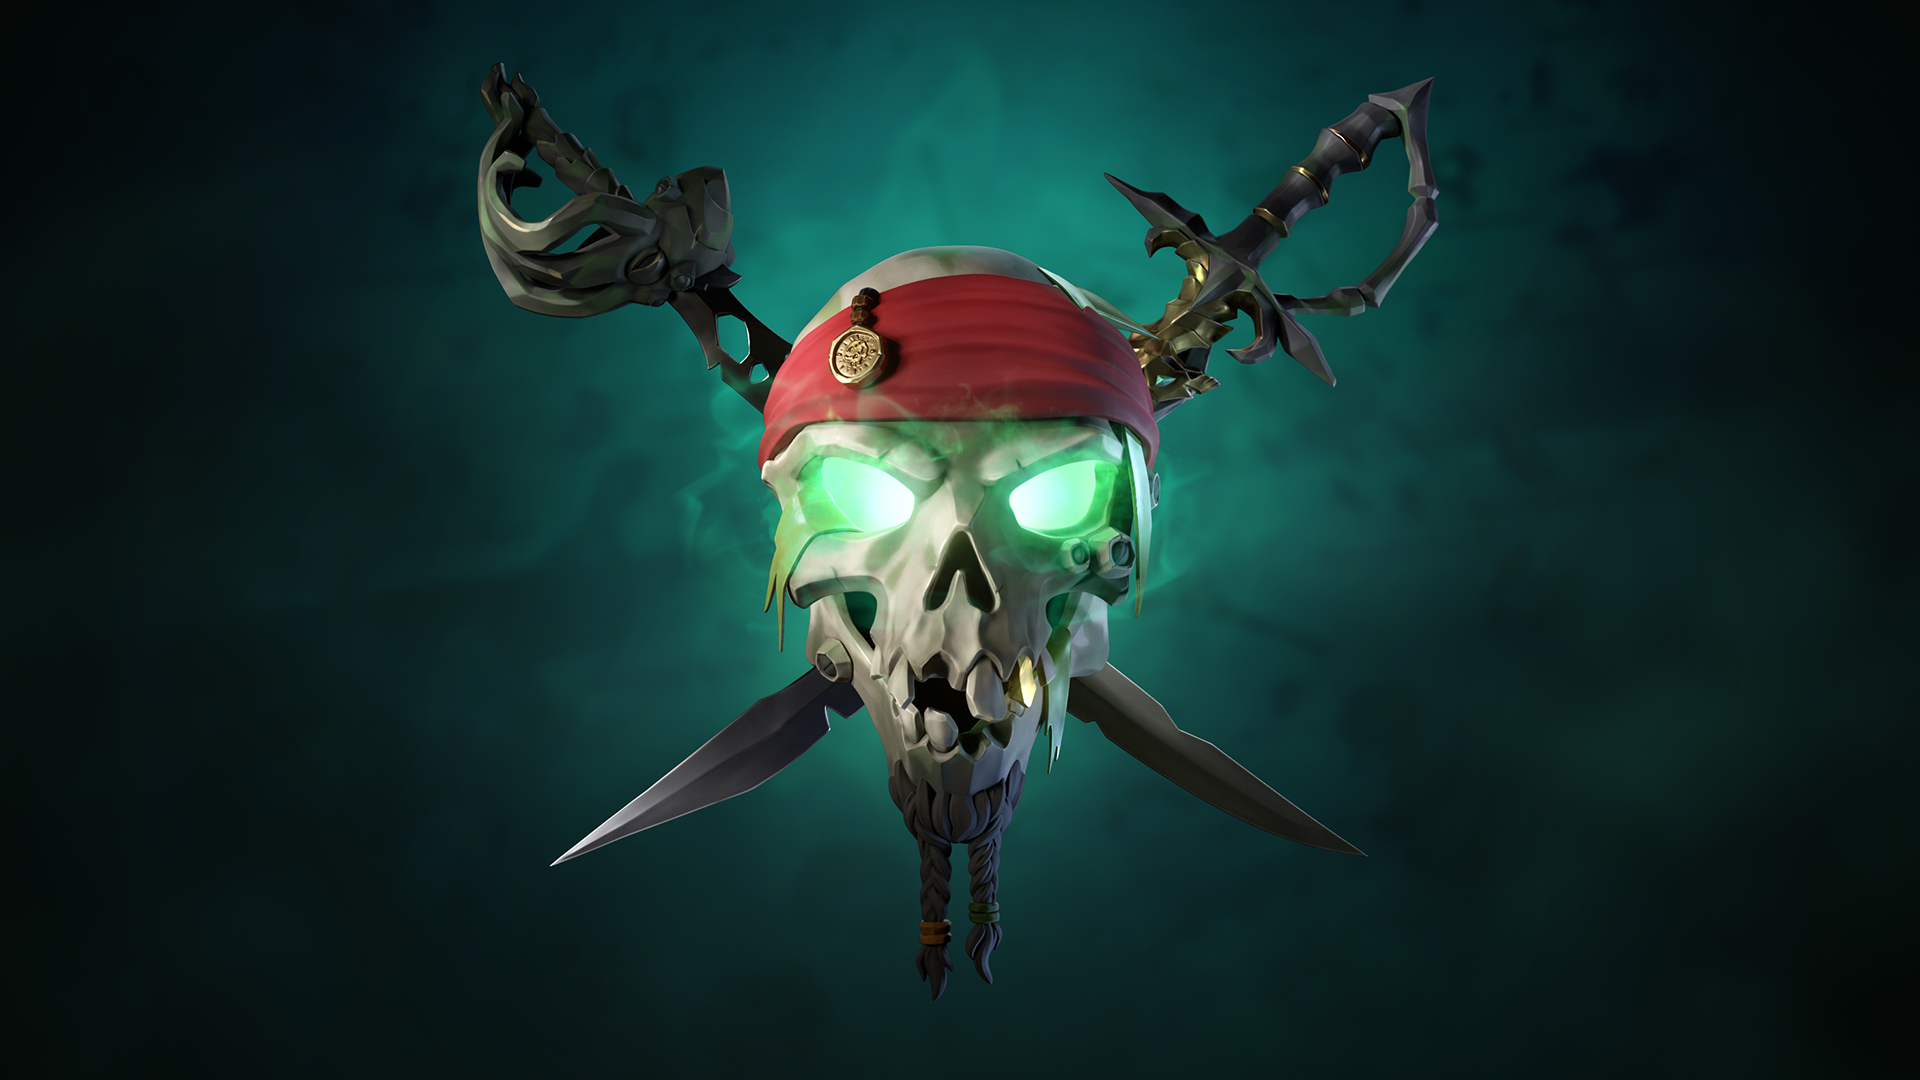 Icon for A Pirate's Life for Me